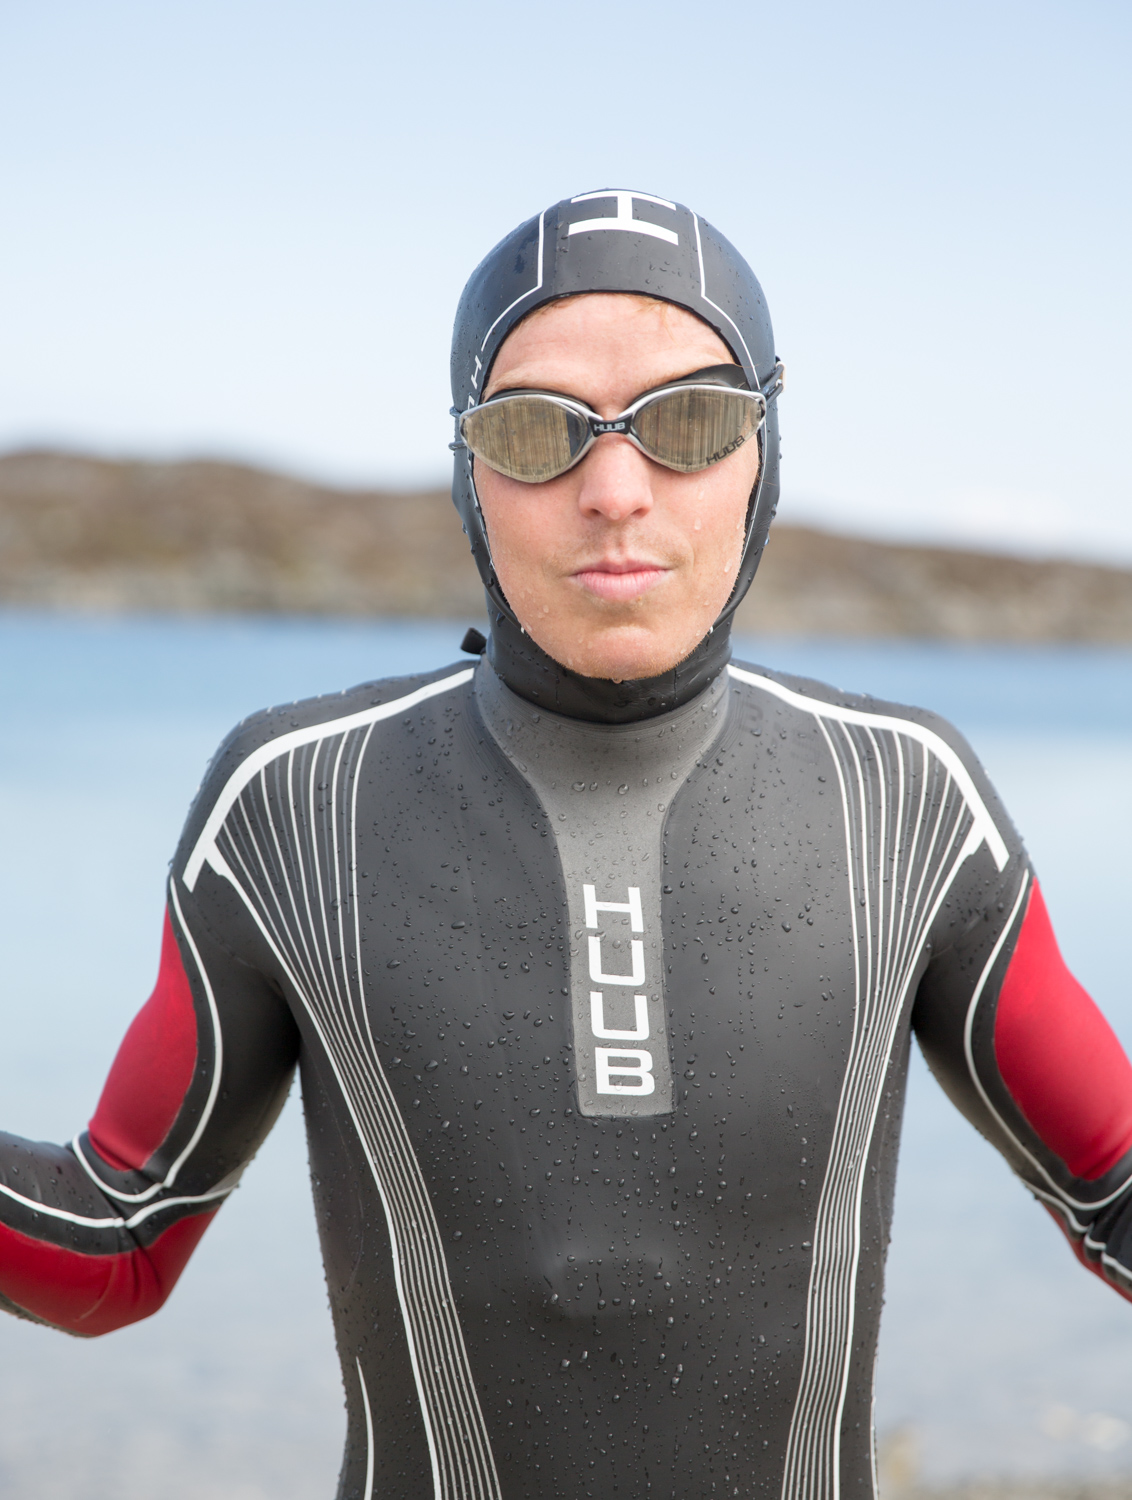 triallan - allan hovda - adrena.no - huub - albacore - altair - balaclava - triathlon wetsuit - cold water swimming - open water